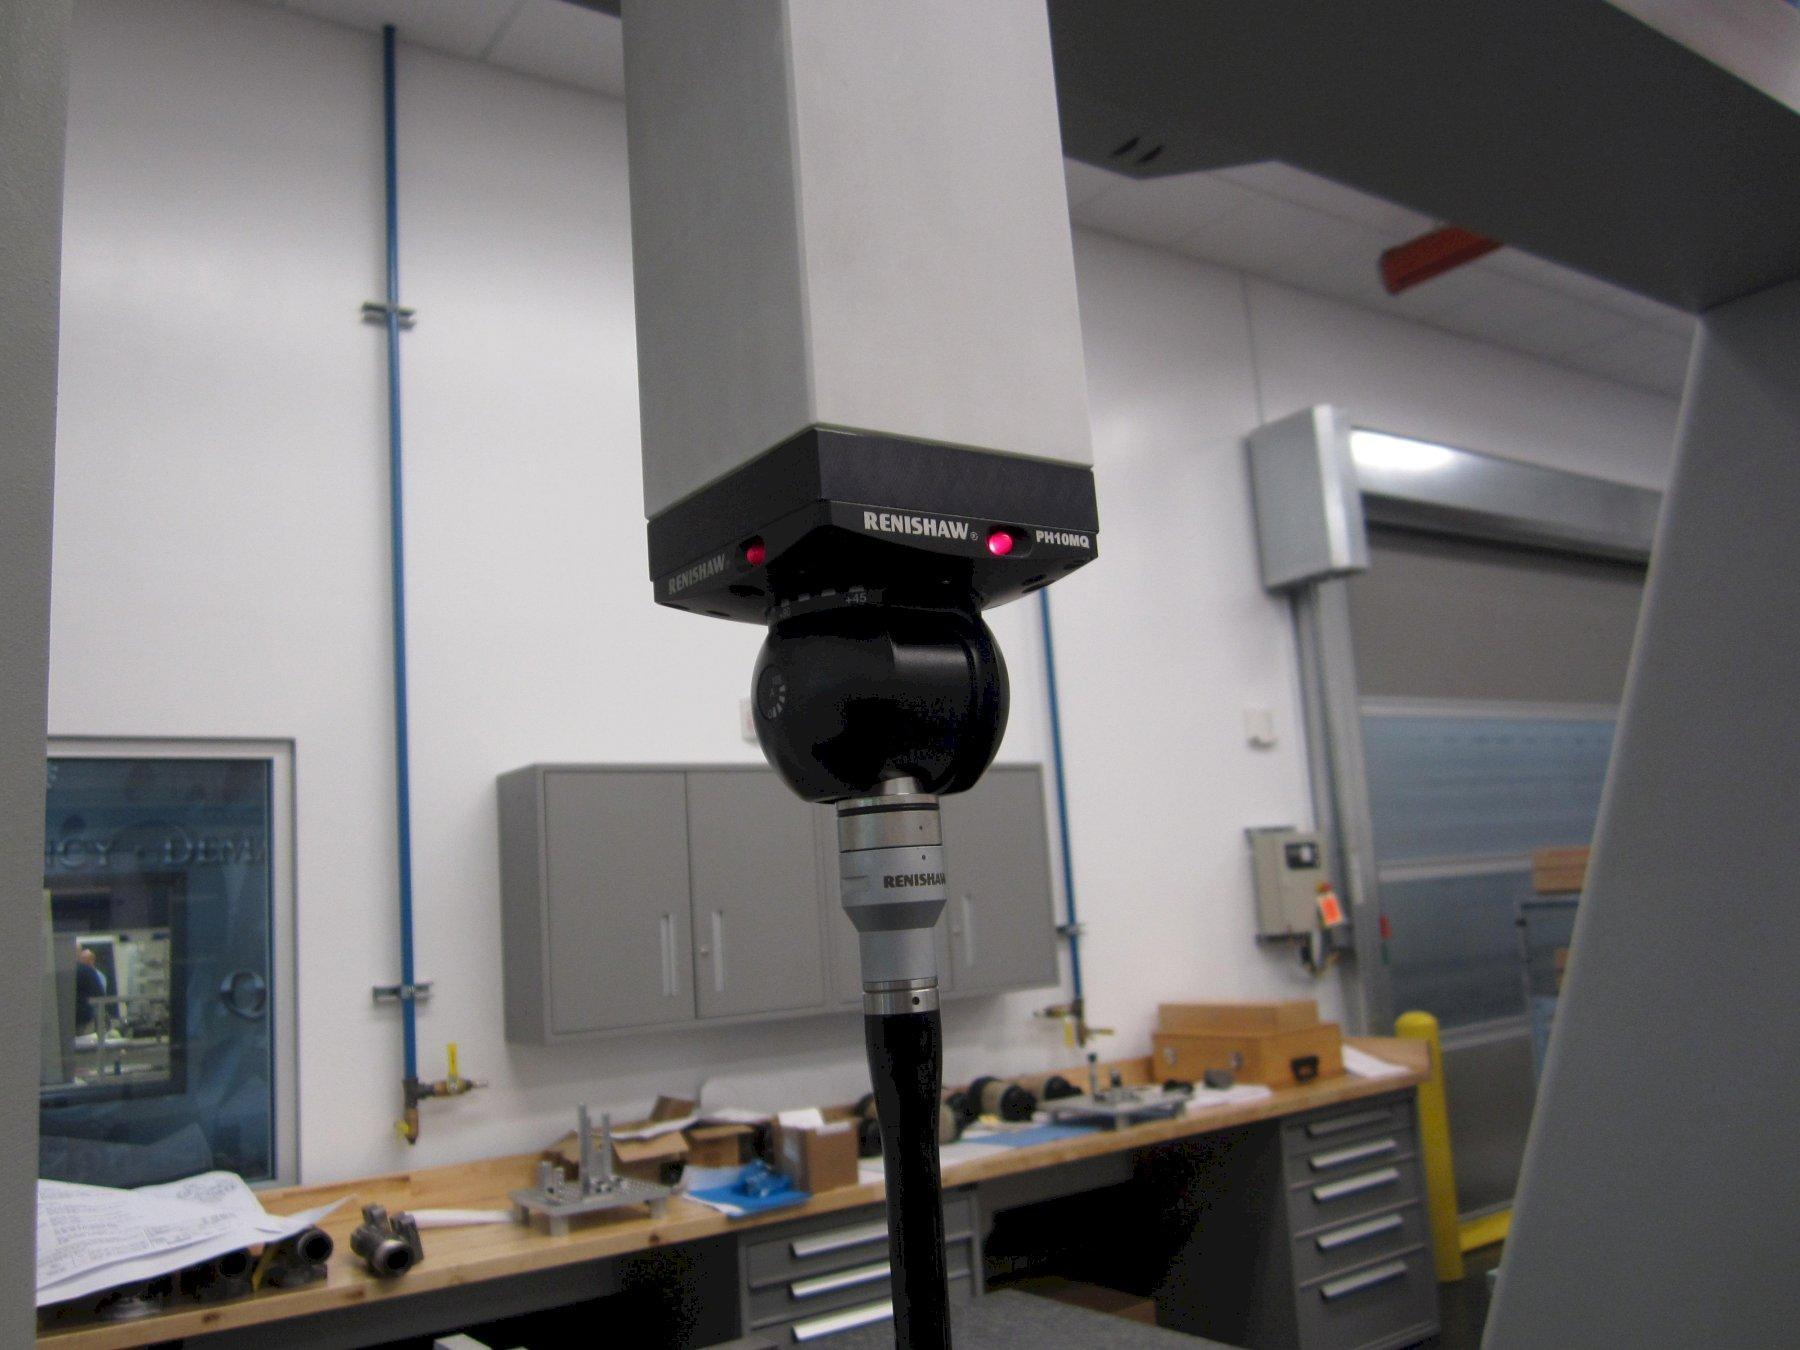 SHEFFIELDSheffield Endeavor FlexScan Series 12.30.10  Coordinate Measuring Machine